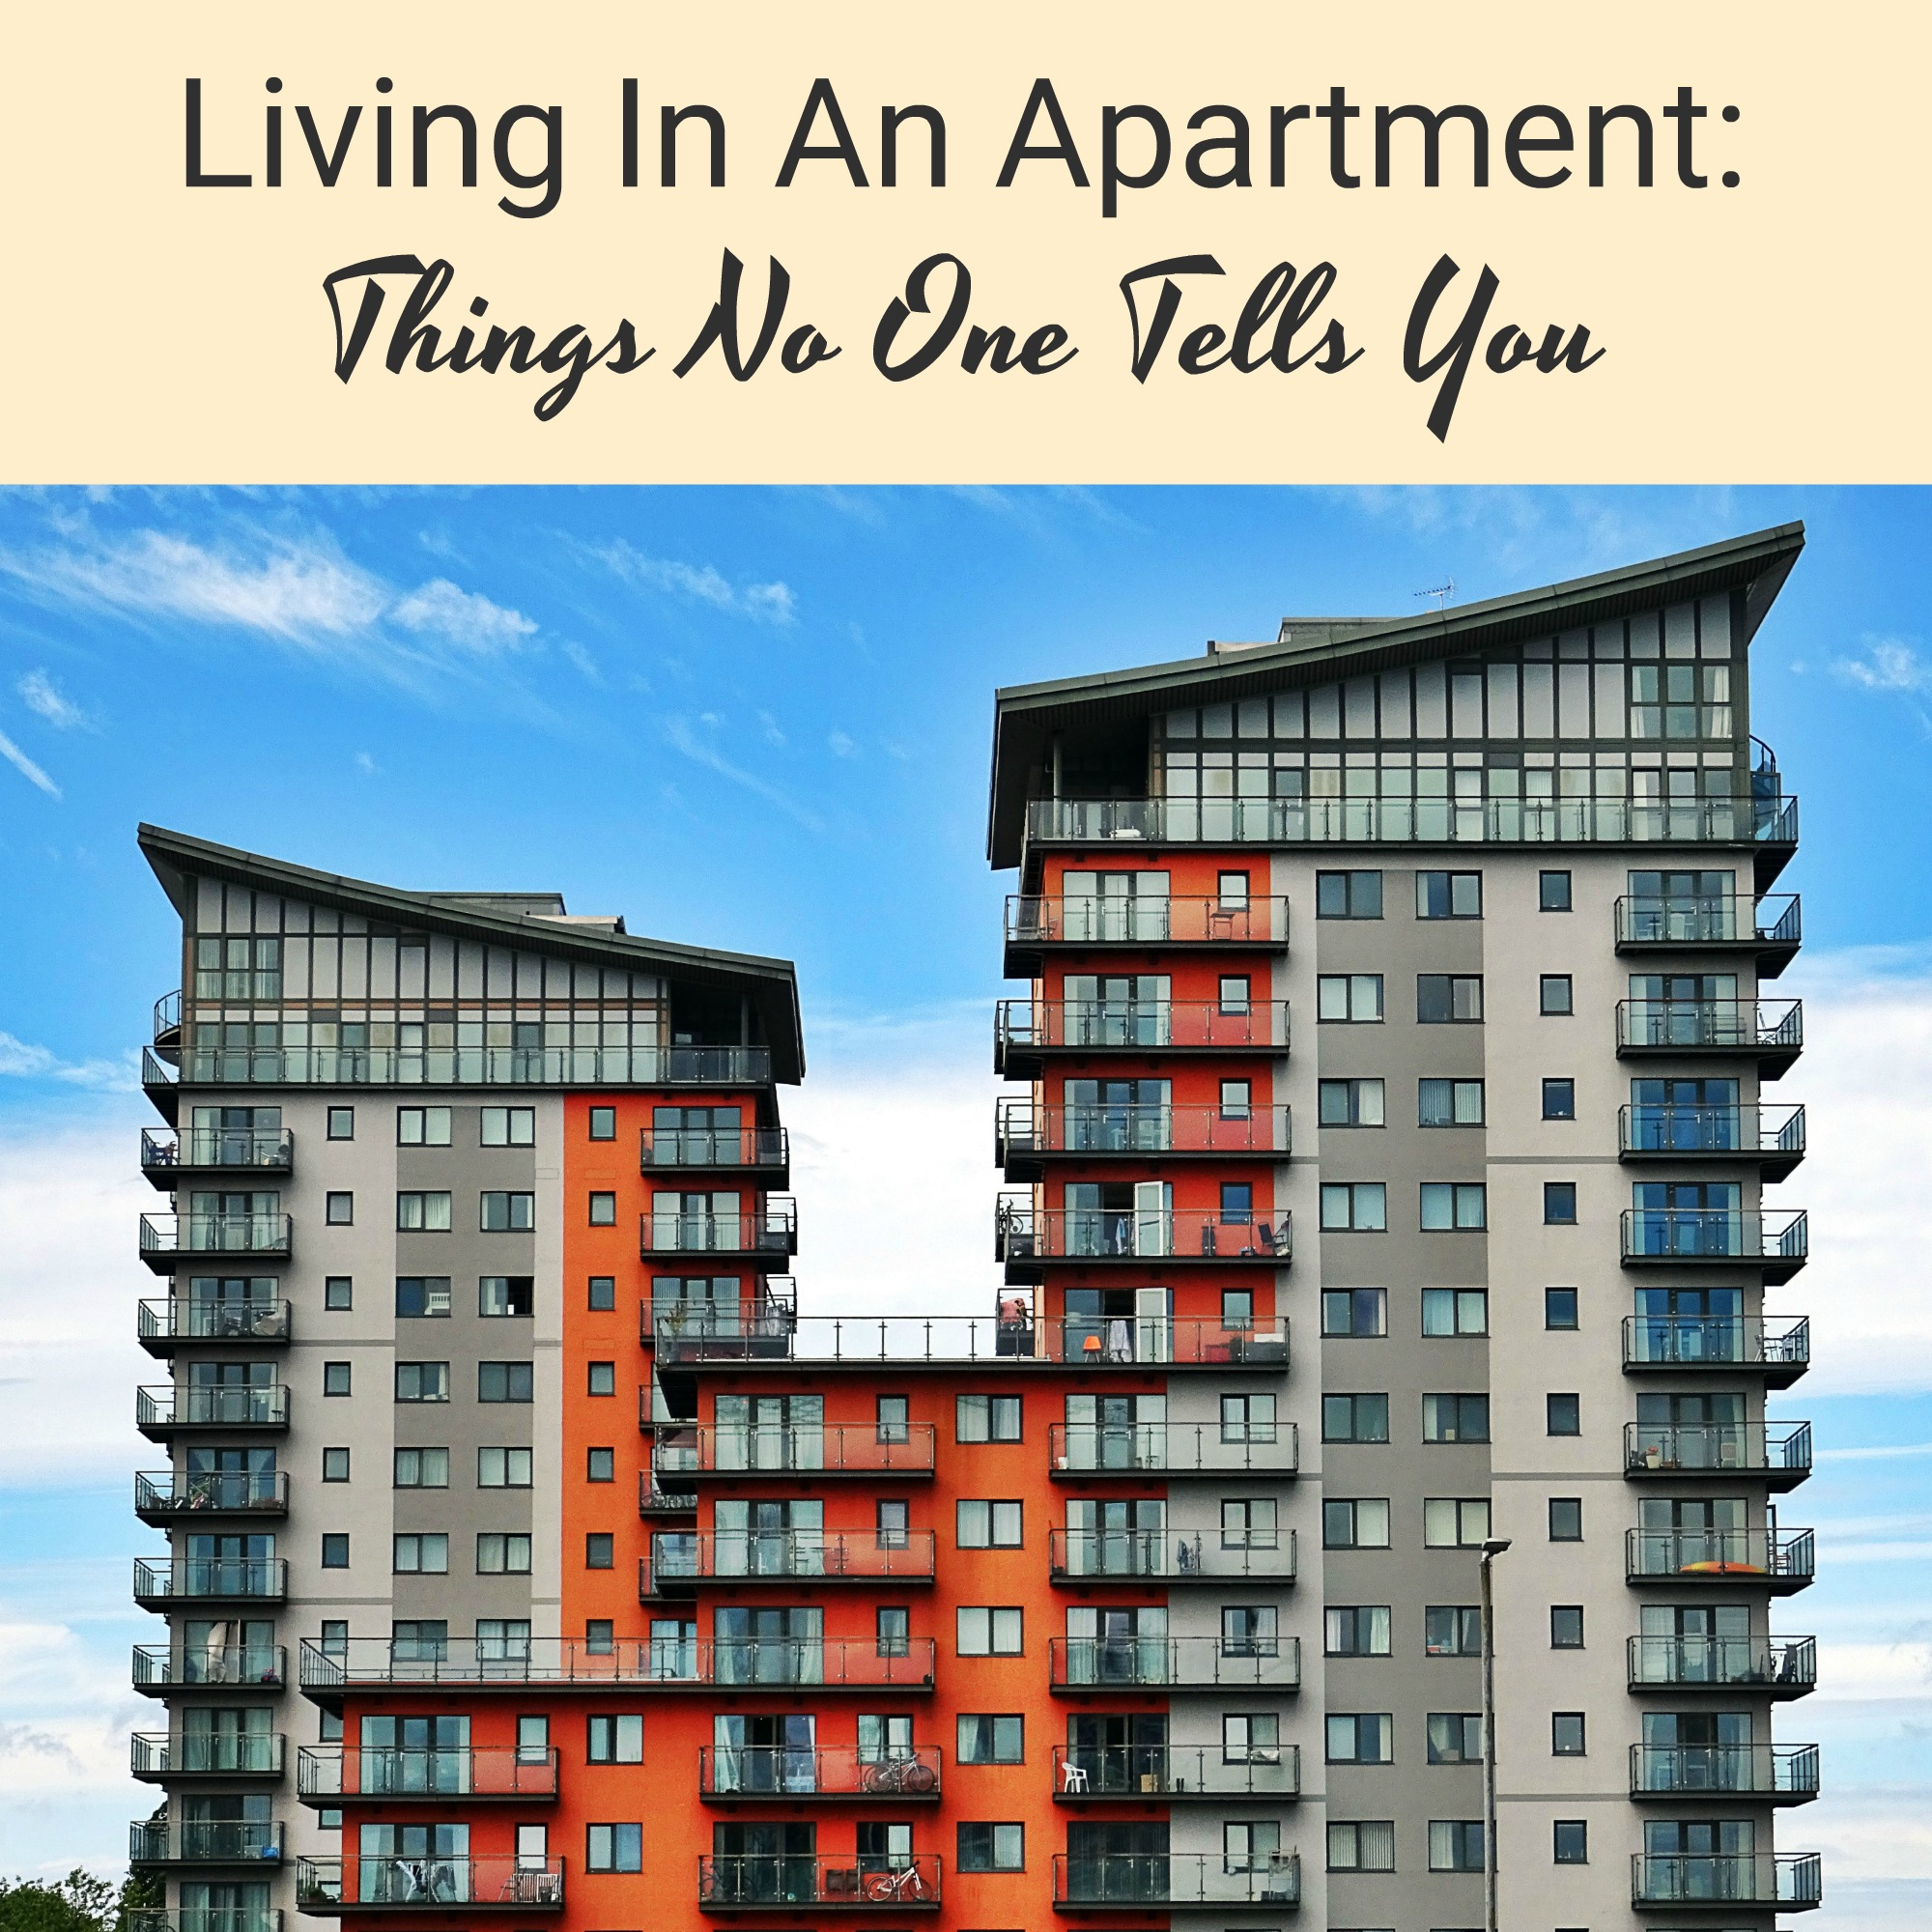 Living In An Apartment: Things No One Tells You